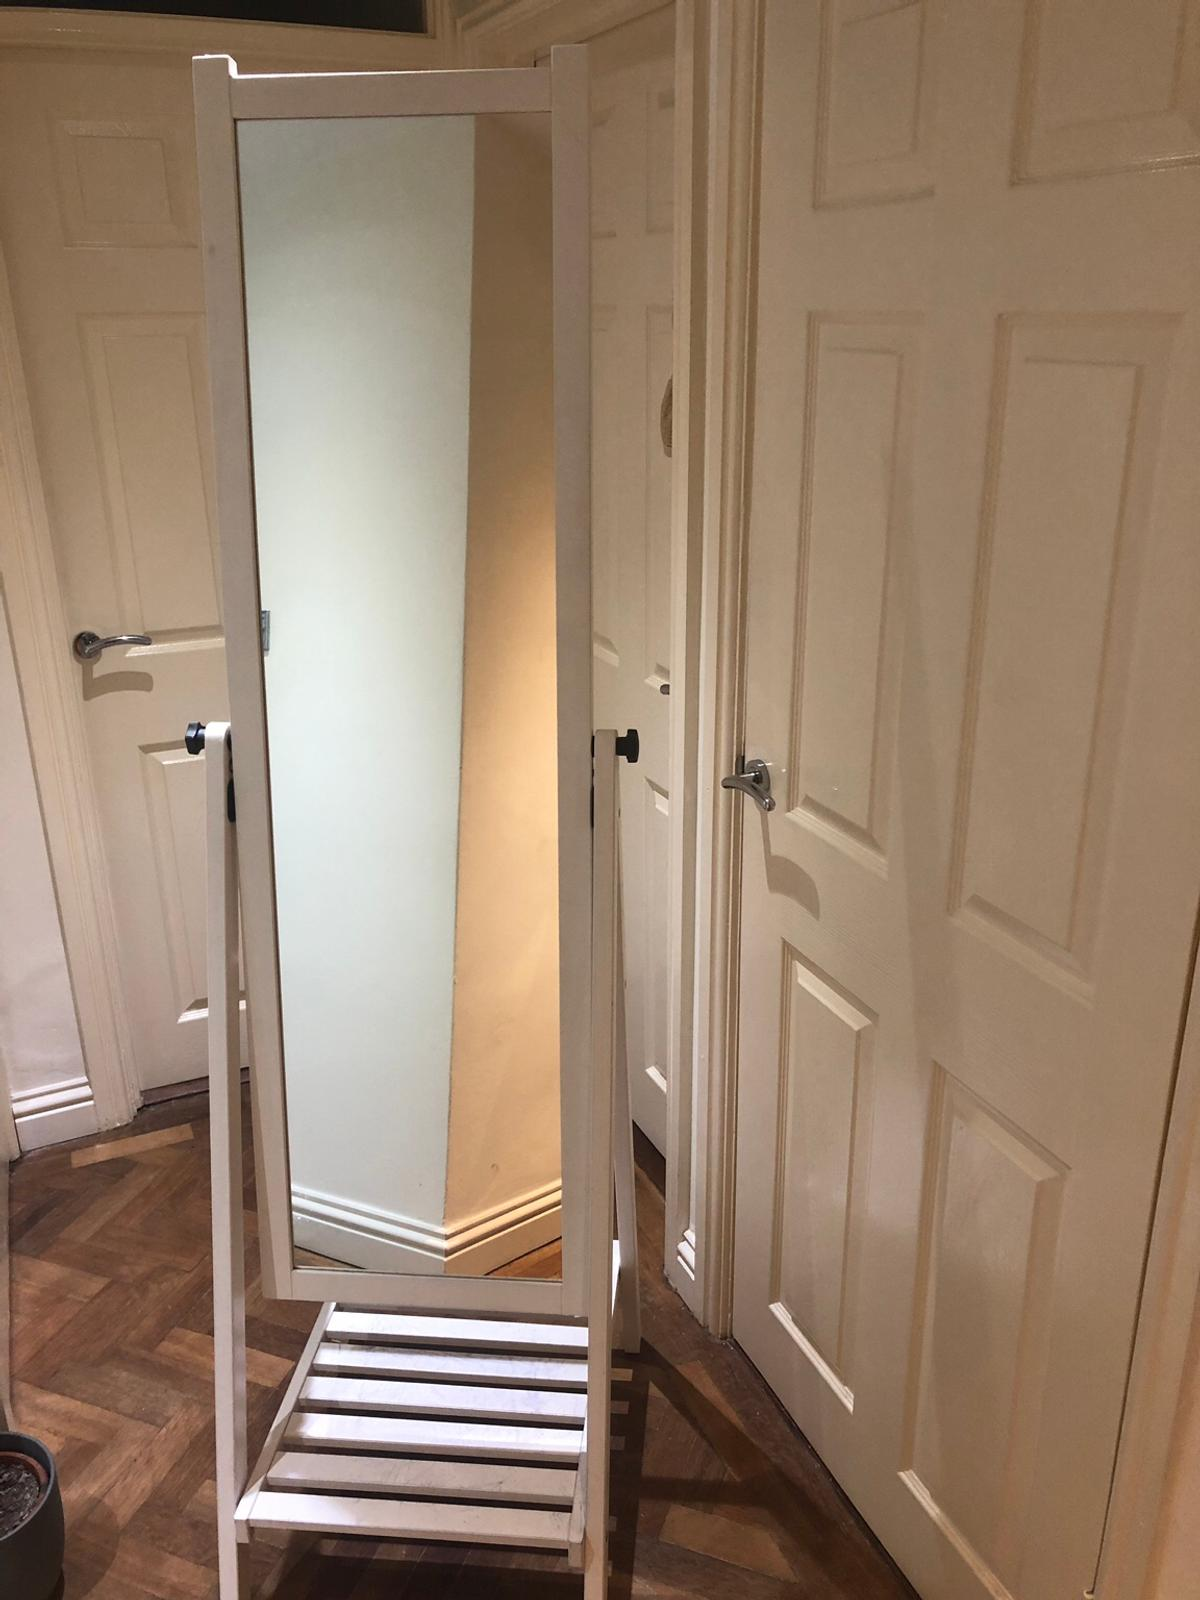 Ikea Isfjorden Standing Mirror In White In Se26 Lewisham For 10 00 For Sale Shpock